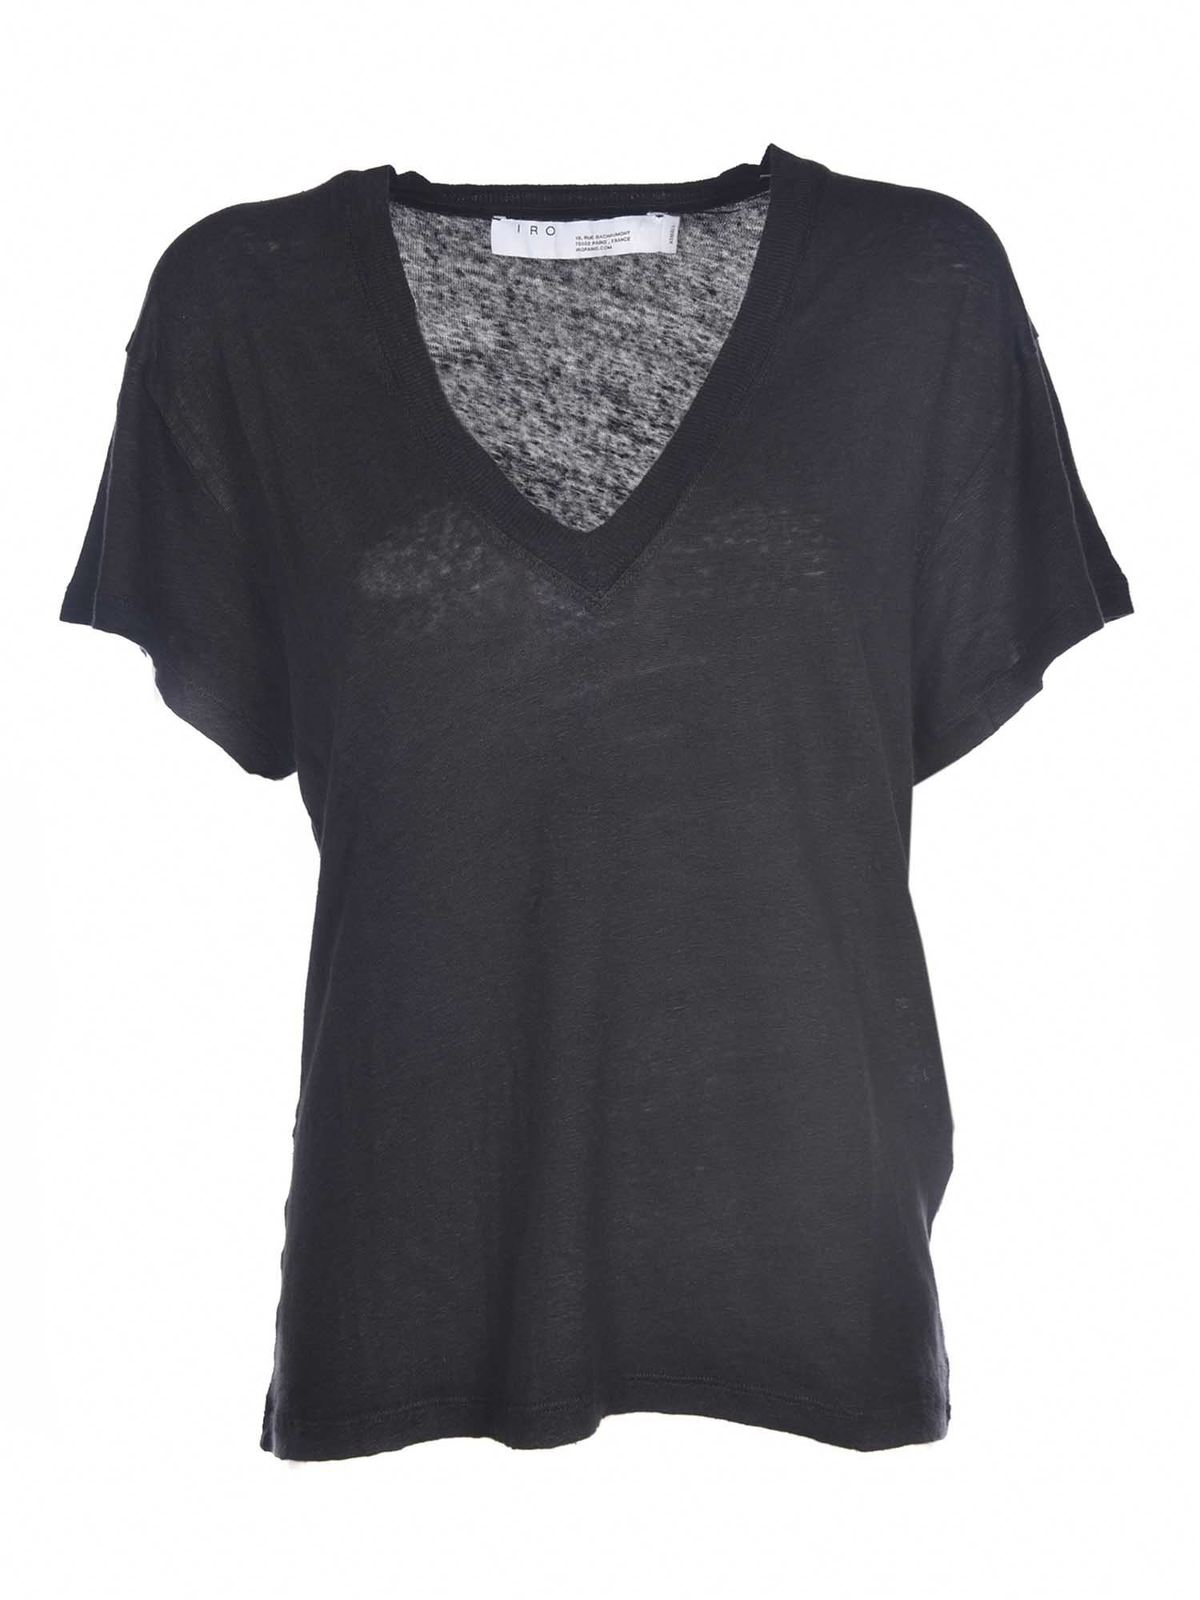 Iro HELOISE T-SHIRT IN BLACK